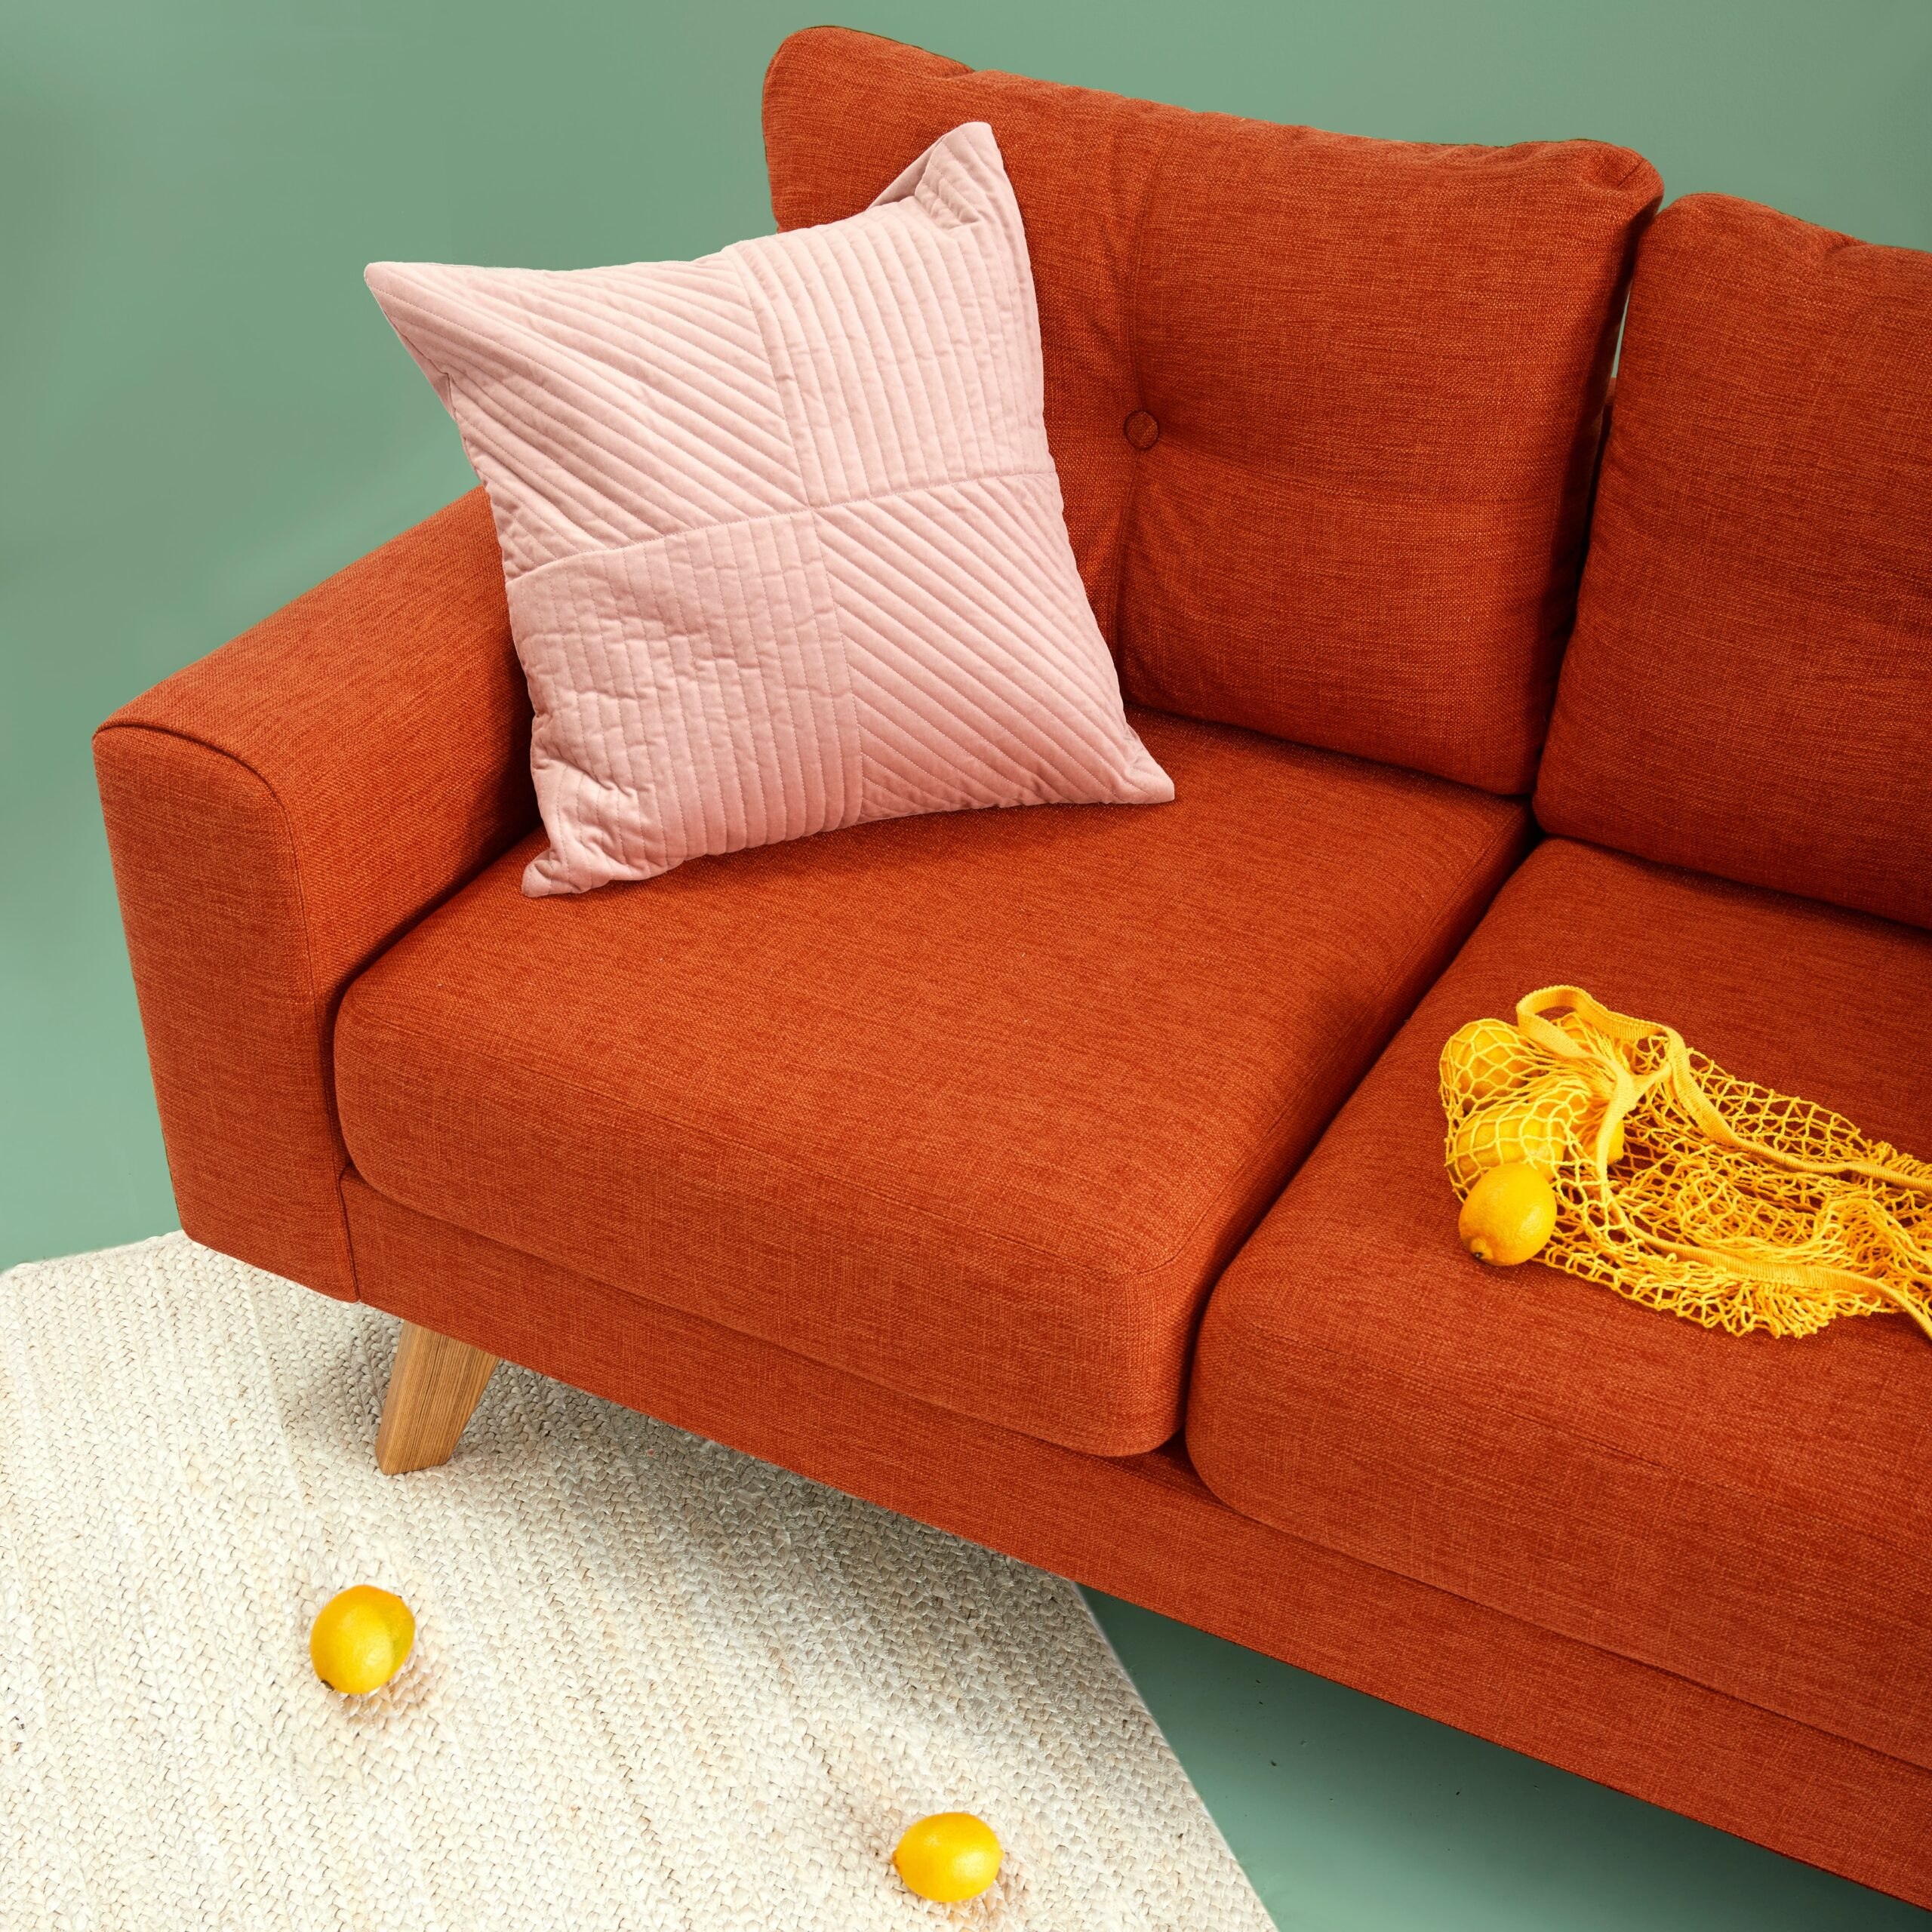 Upholstery cleaning you can count on.